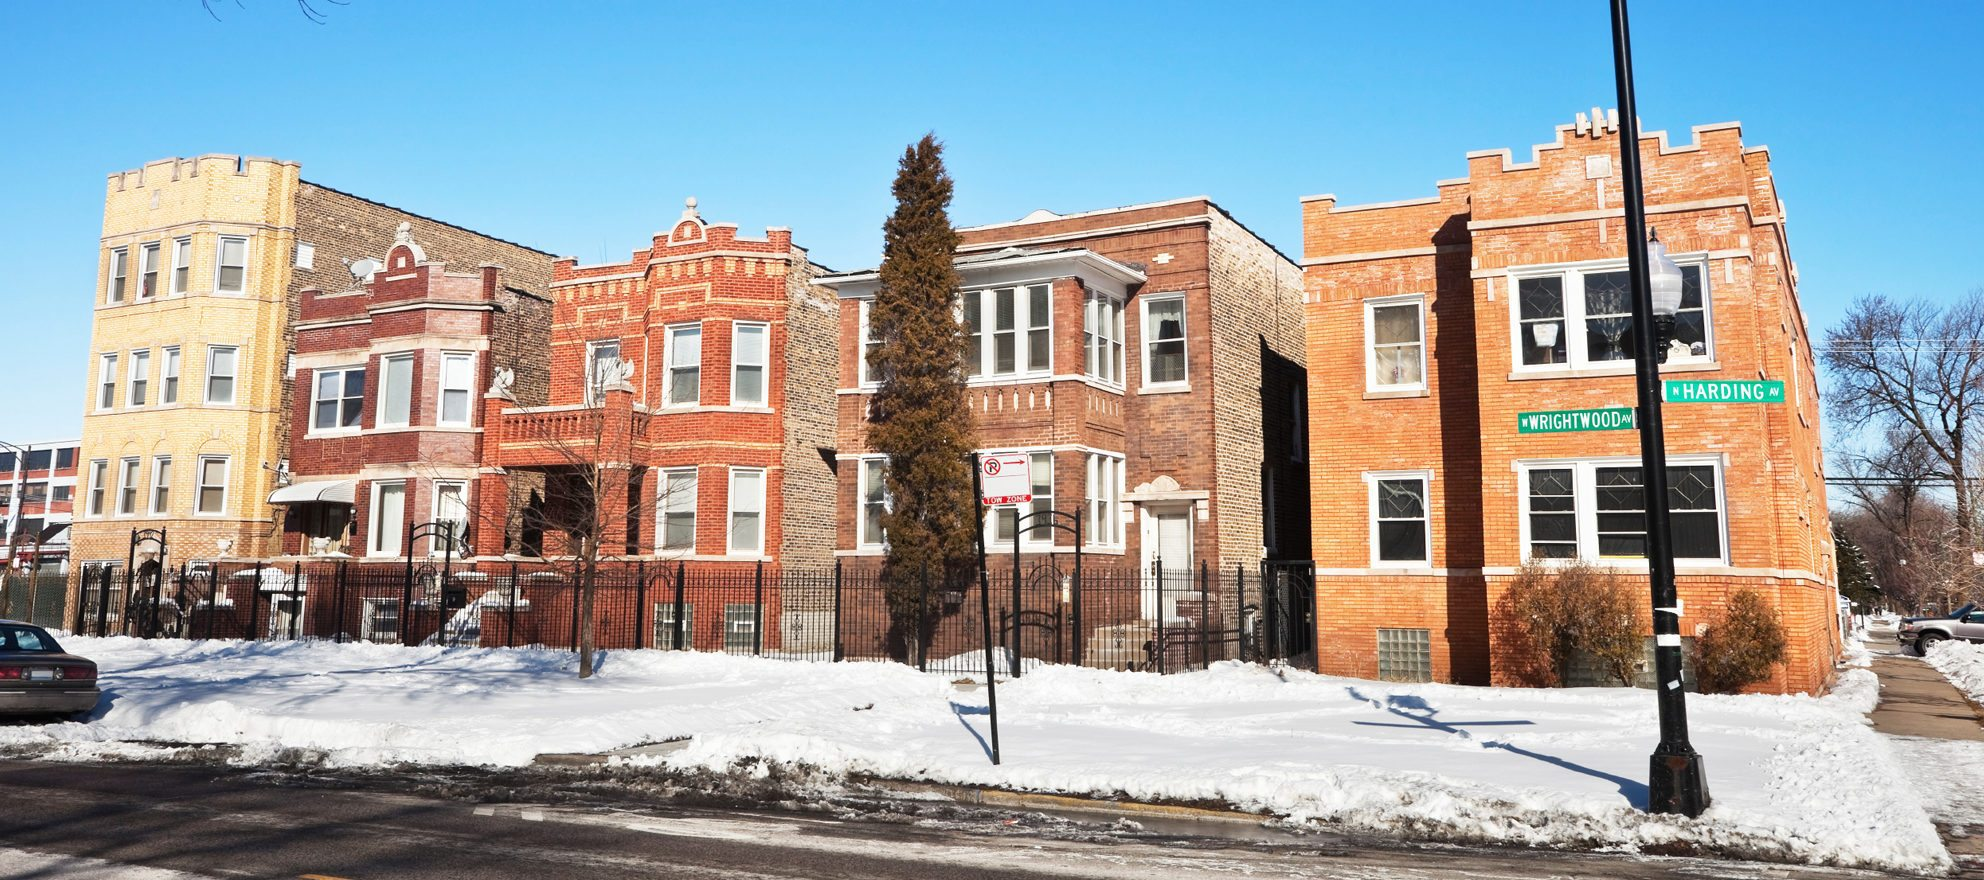 What has been happening the last 20 years in Logan Square?